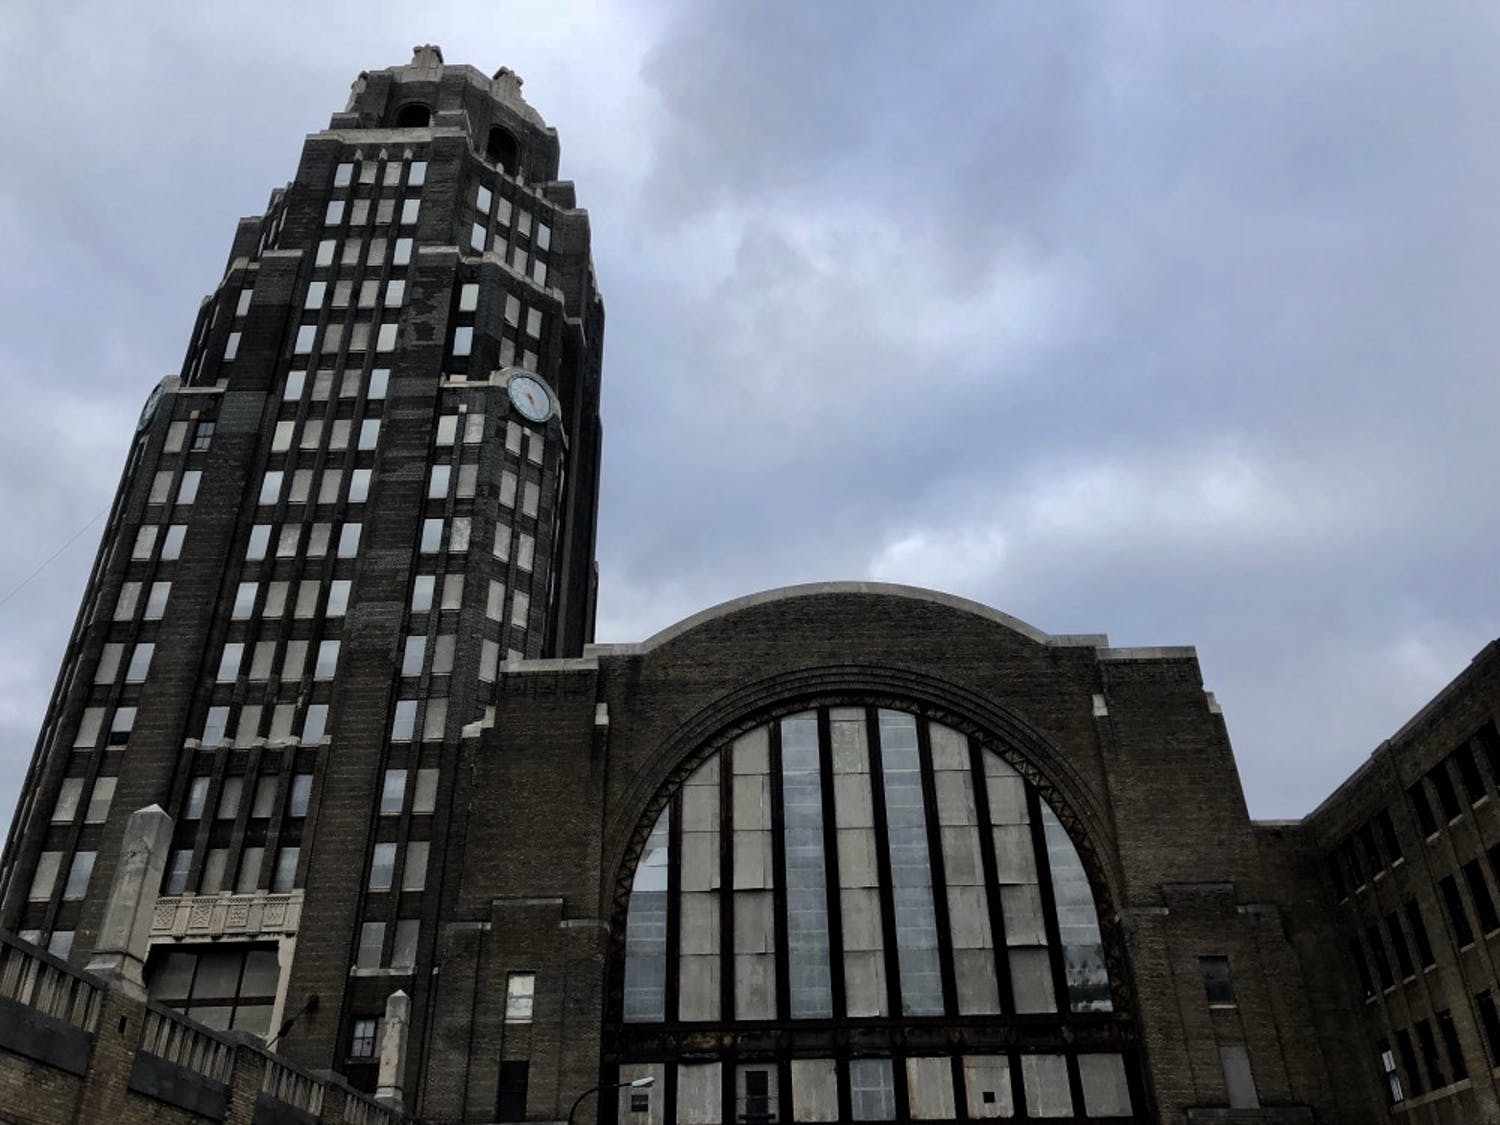 Buffalo's Grand Central Terminal, abandoned since 1979, has recently undergone efforts to restore the once-mighty train station. However, no amount of fixing-up can remove spirits from the station's hayday that still haunt the spacious halls.